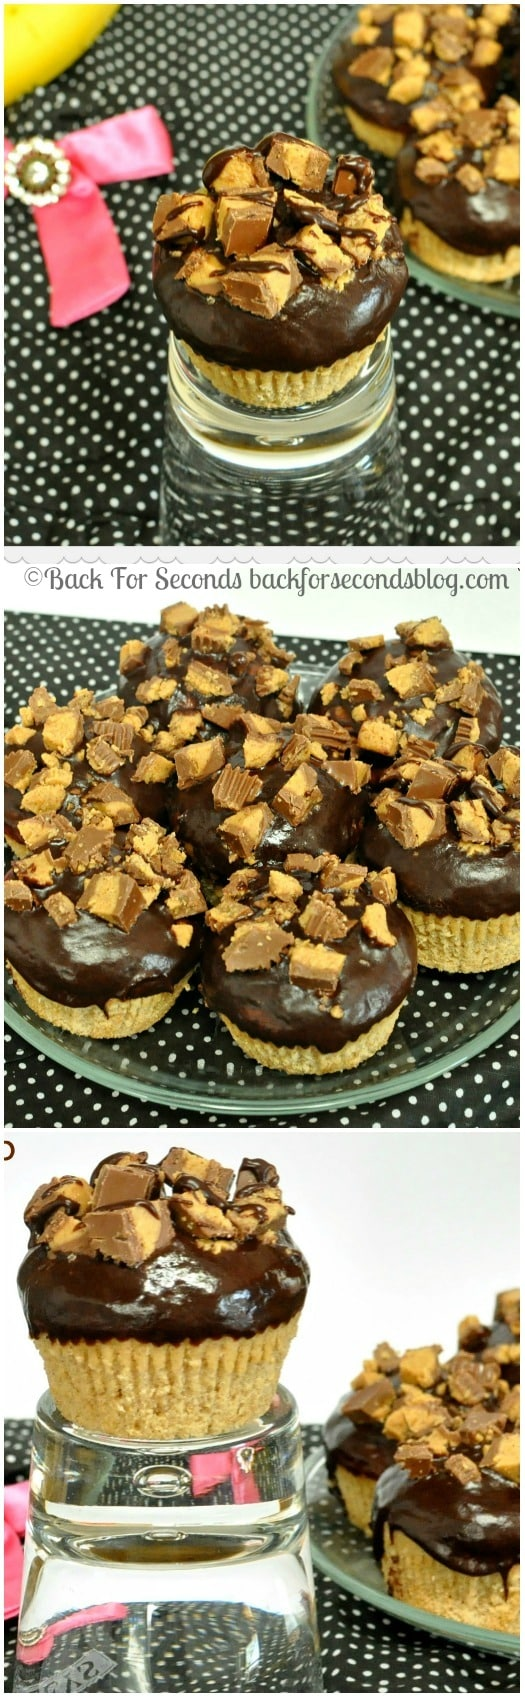 Ganache Topped Peanut Butter Banana Muffins  https://backforseconds.com  #muffins #breakfast #cupcake #peanutbutter #chocolate #reeses